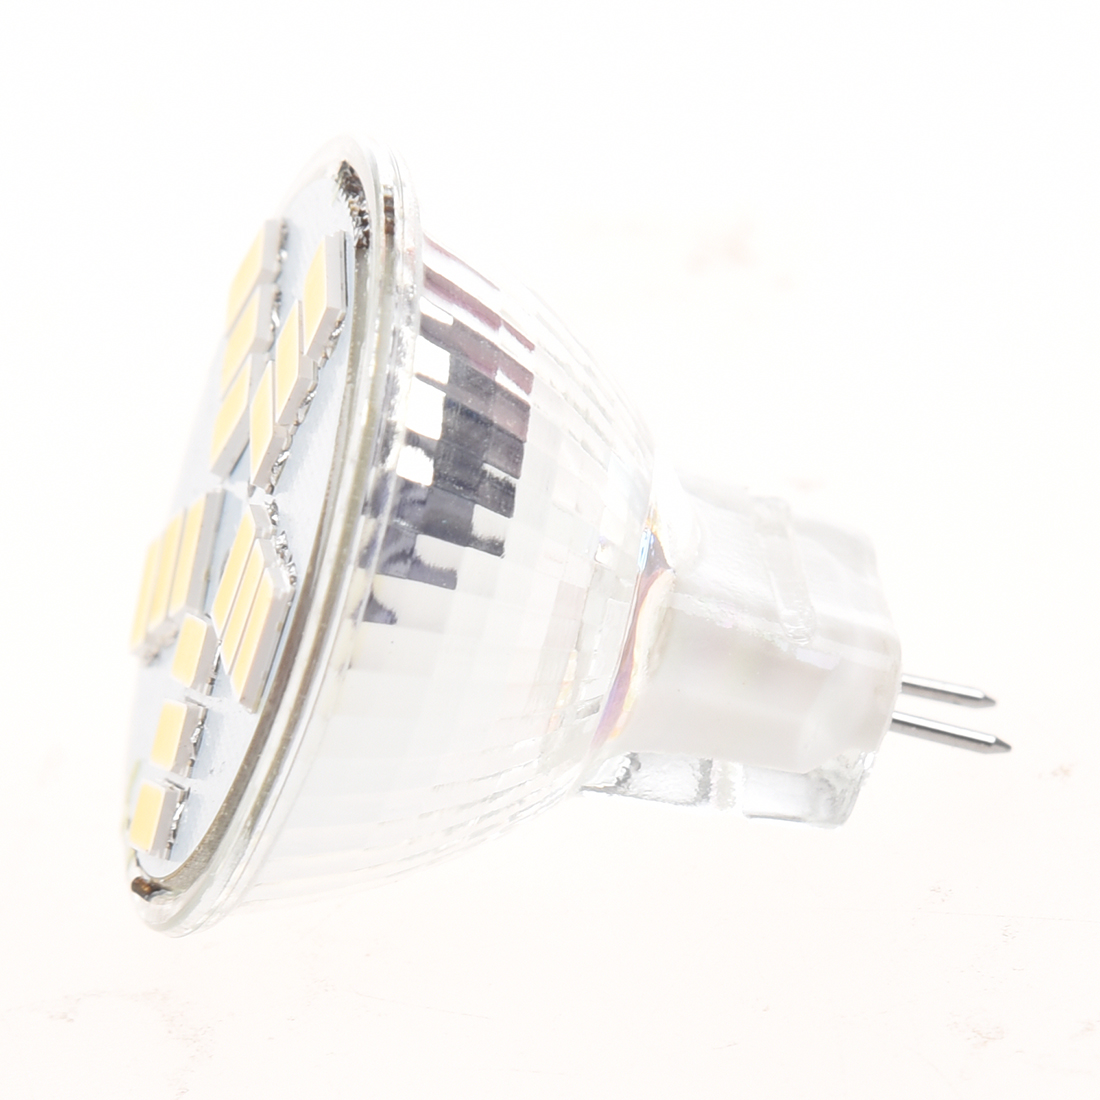 12 Volt Led Verlichting Voor Boot Top 8 Most Popular Led Lamp 12v Mr11 Ideas And Get Free Shipping